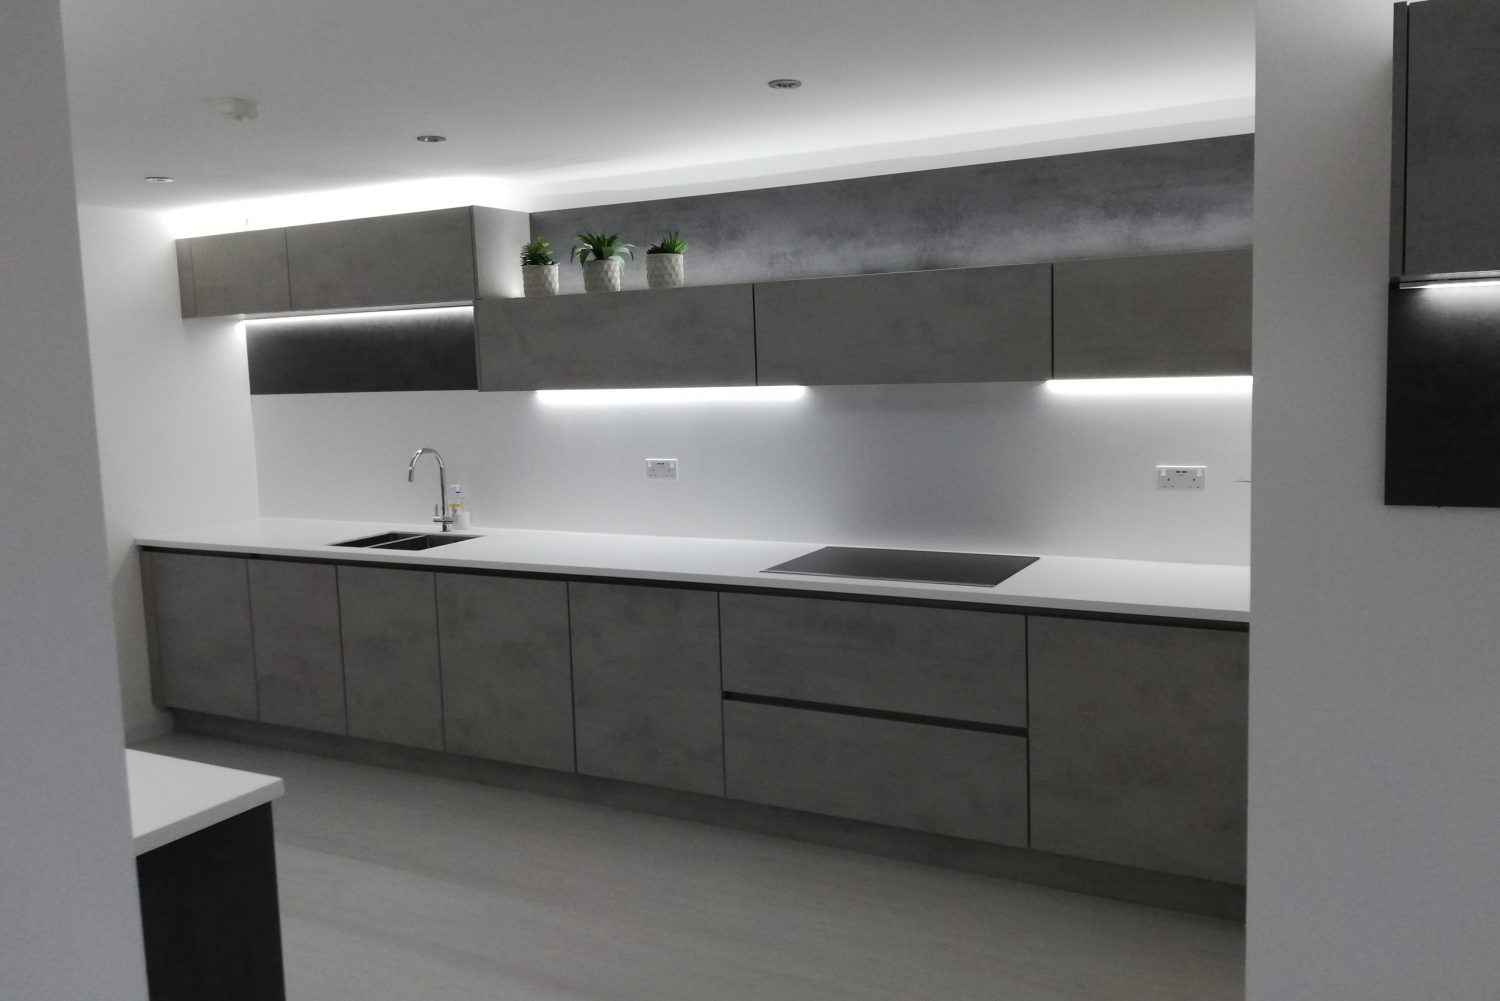 Designer kitchen Long Eaton, kitchen island